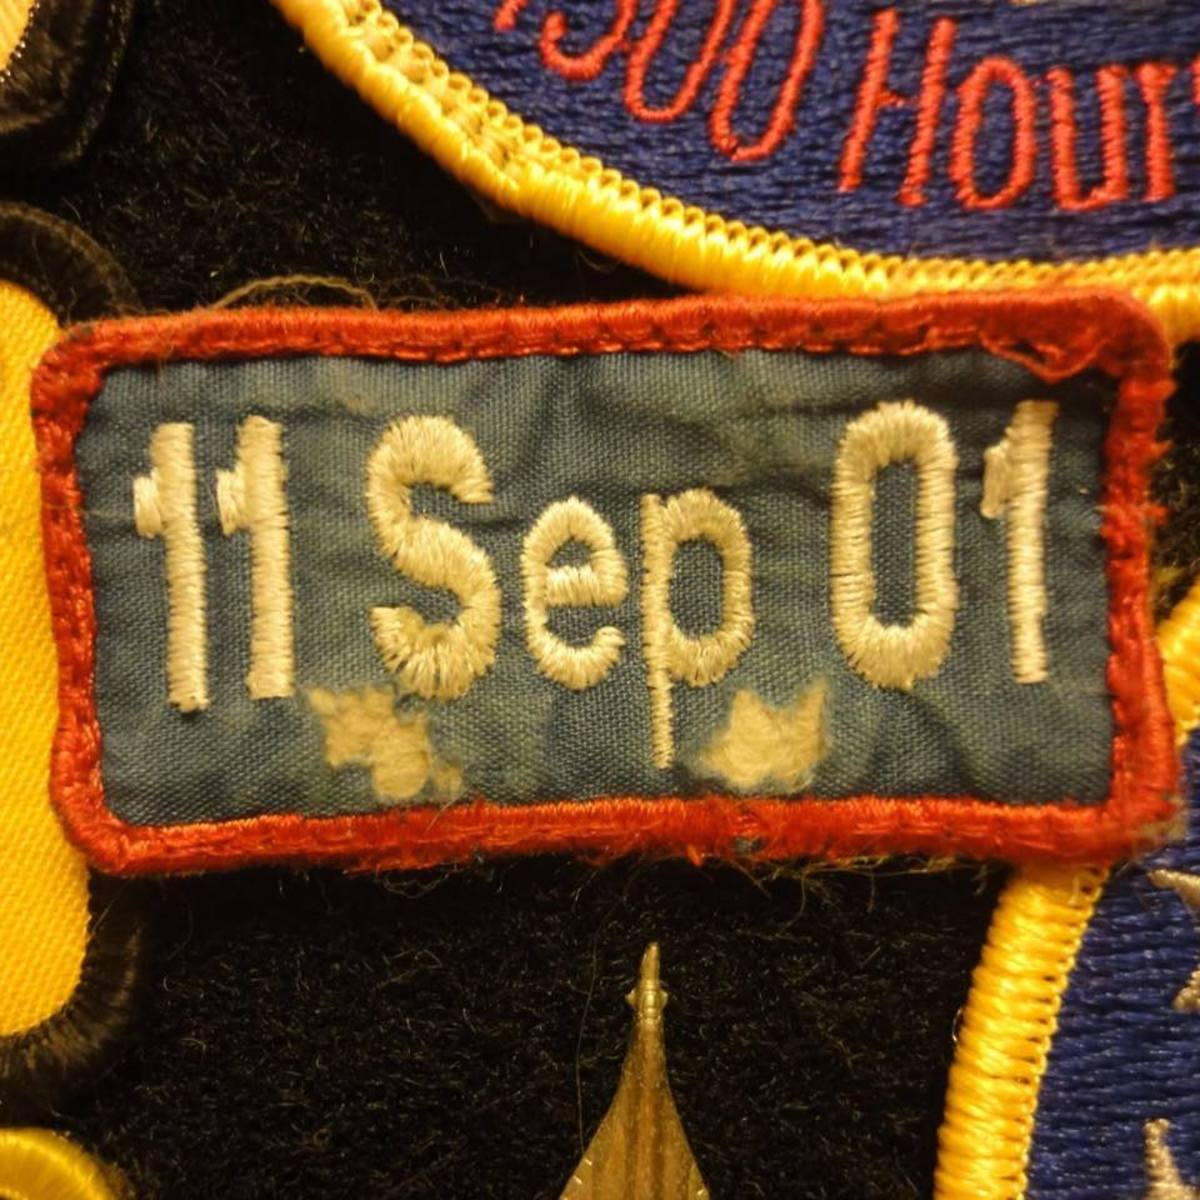 For almost a decade I wore this patch daily on my flight suit pencil pocket